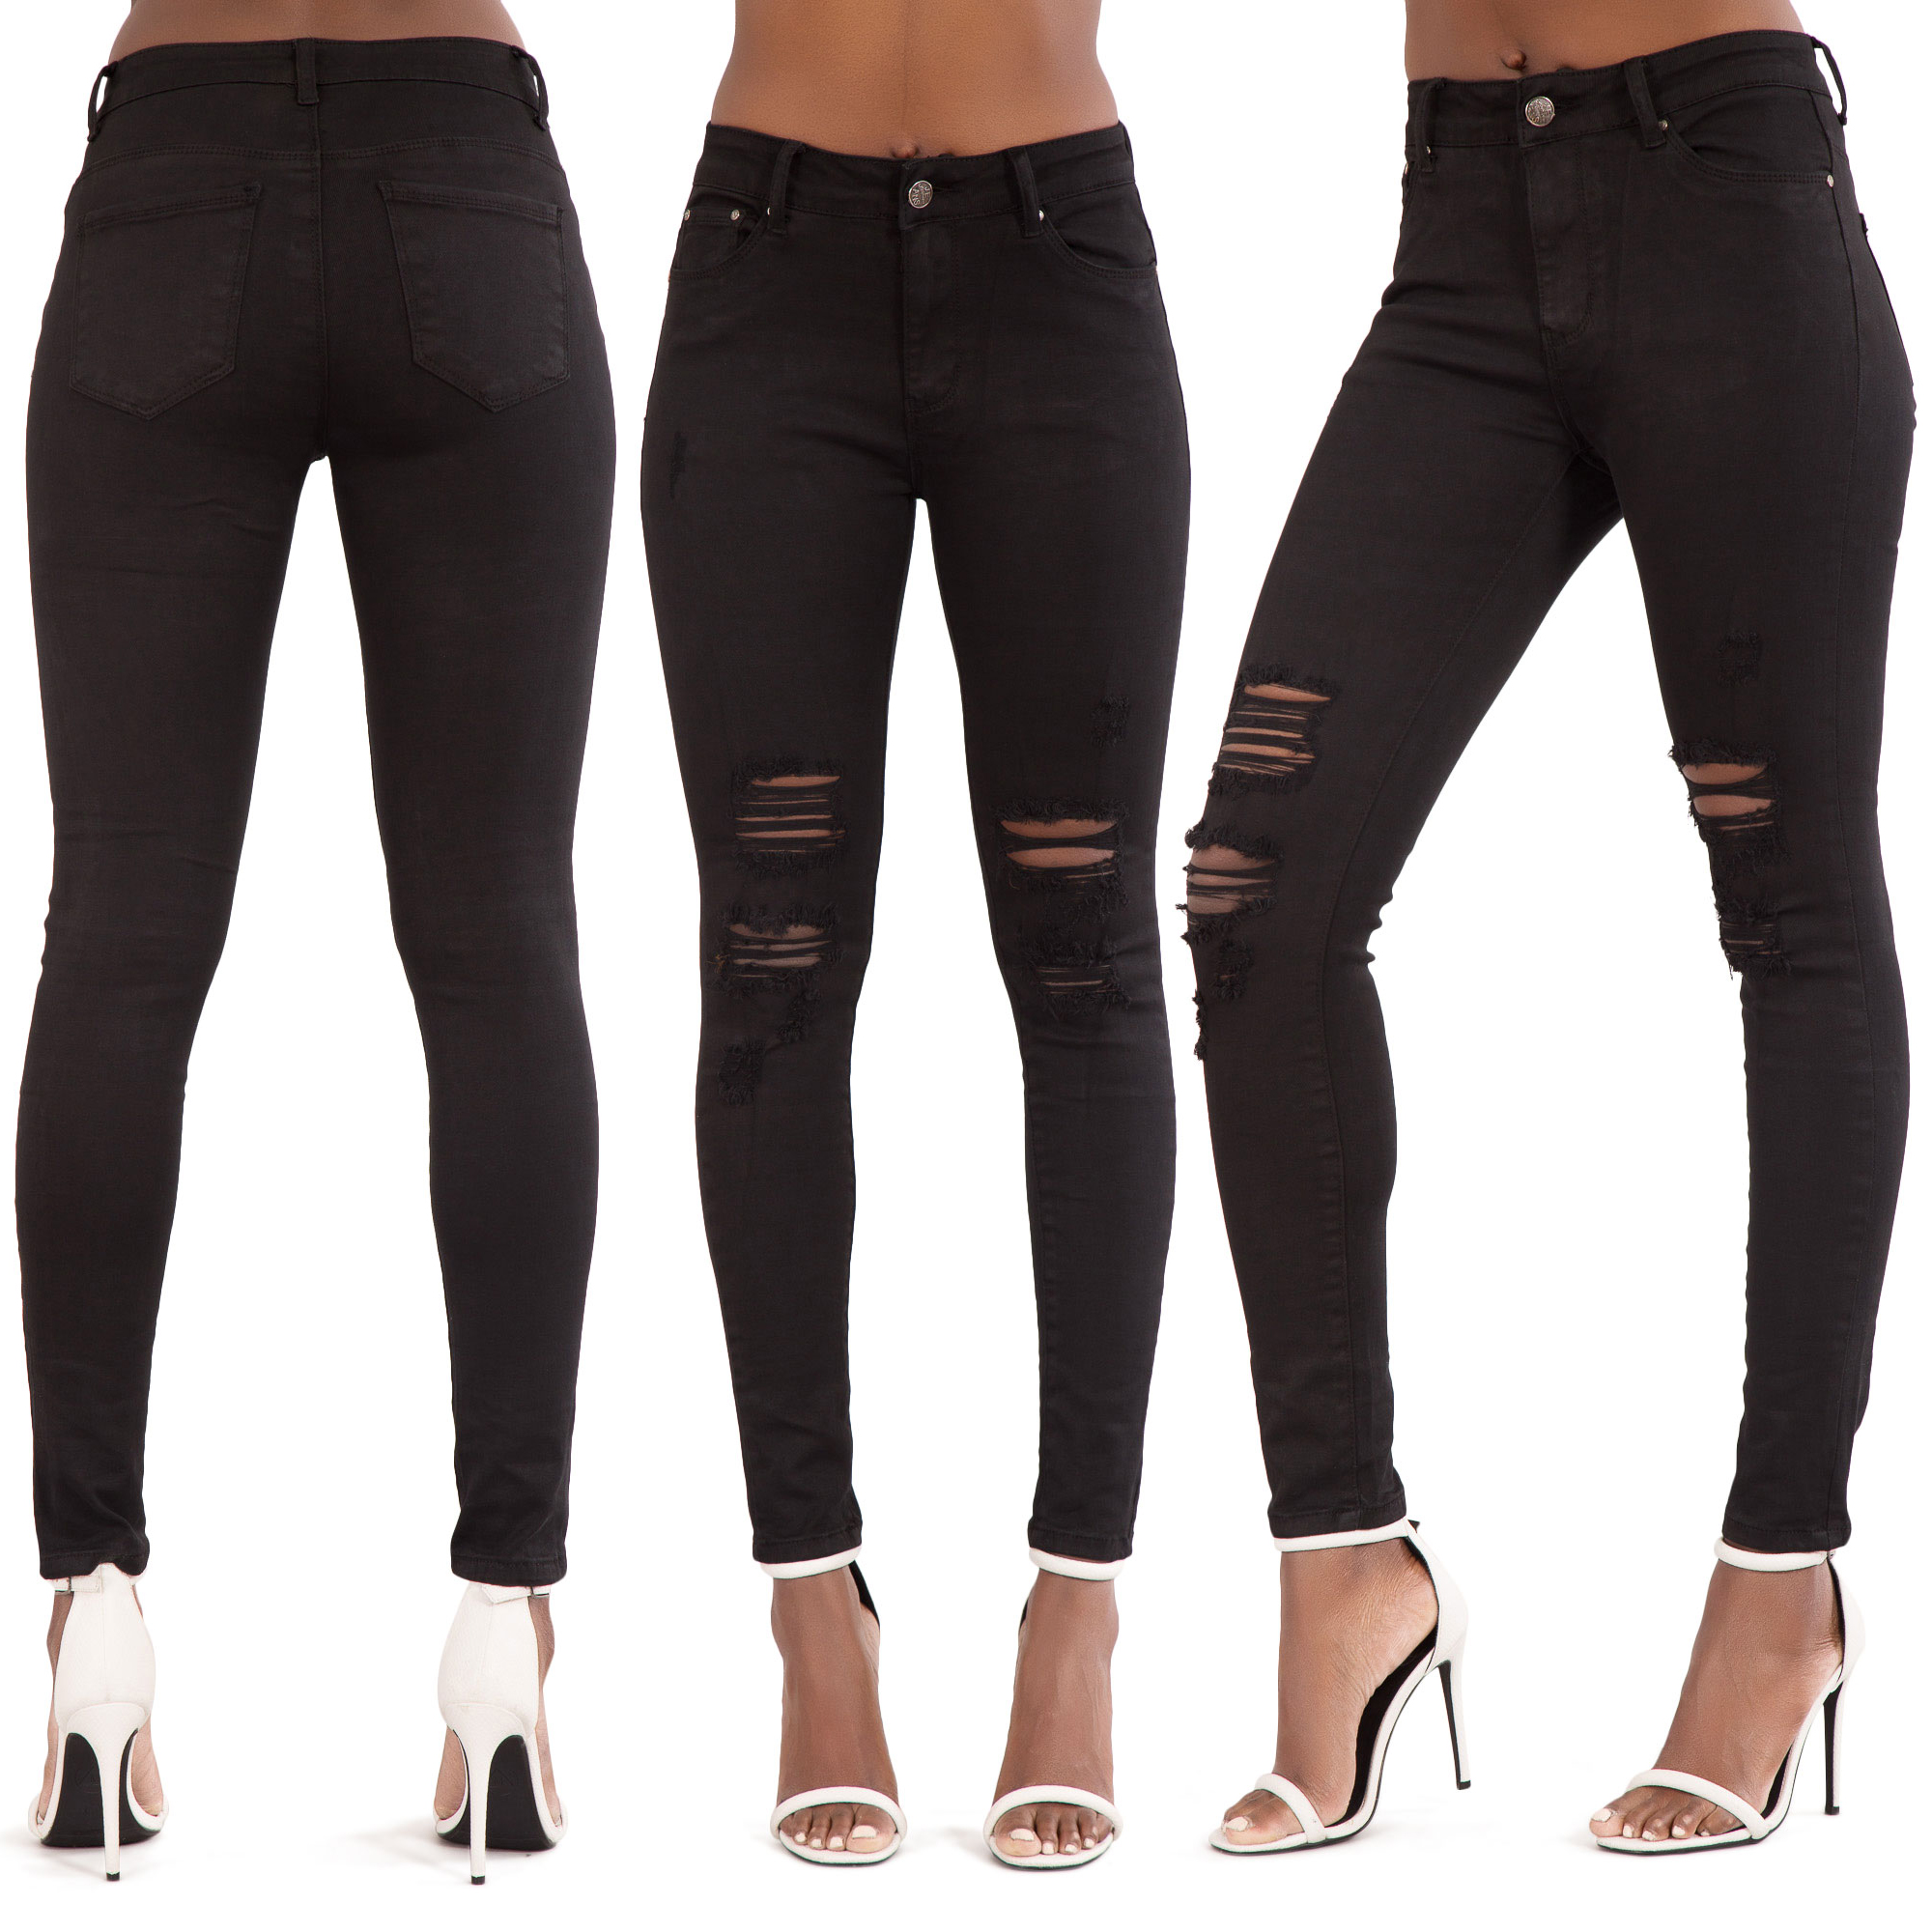 Womens-Ripped-Knee-Skinny-Jeans-Faded-Slim-Fit-Ladies-Denim-Size-6-8-10-12-14-16